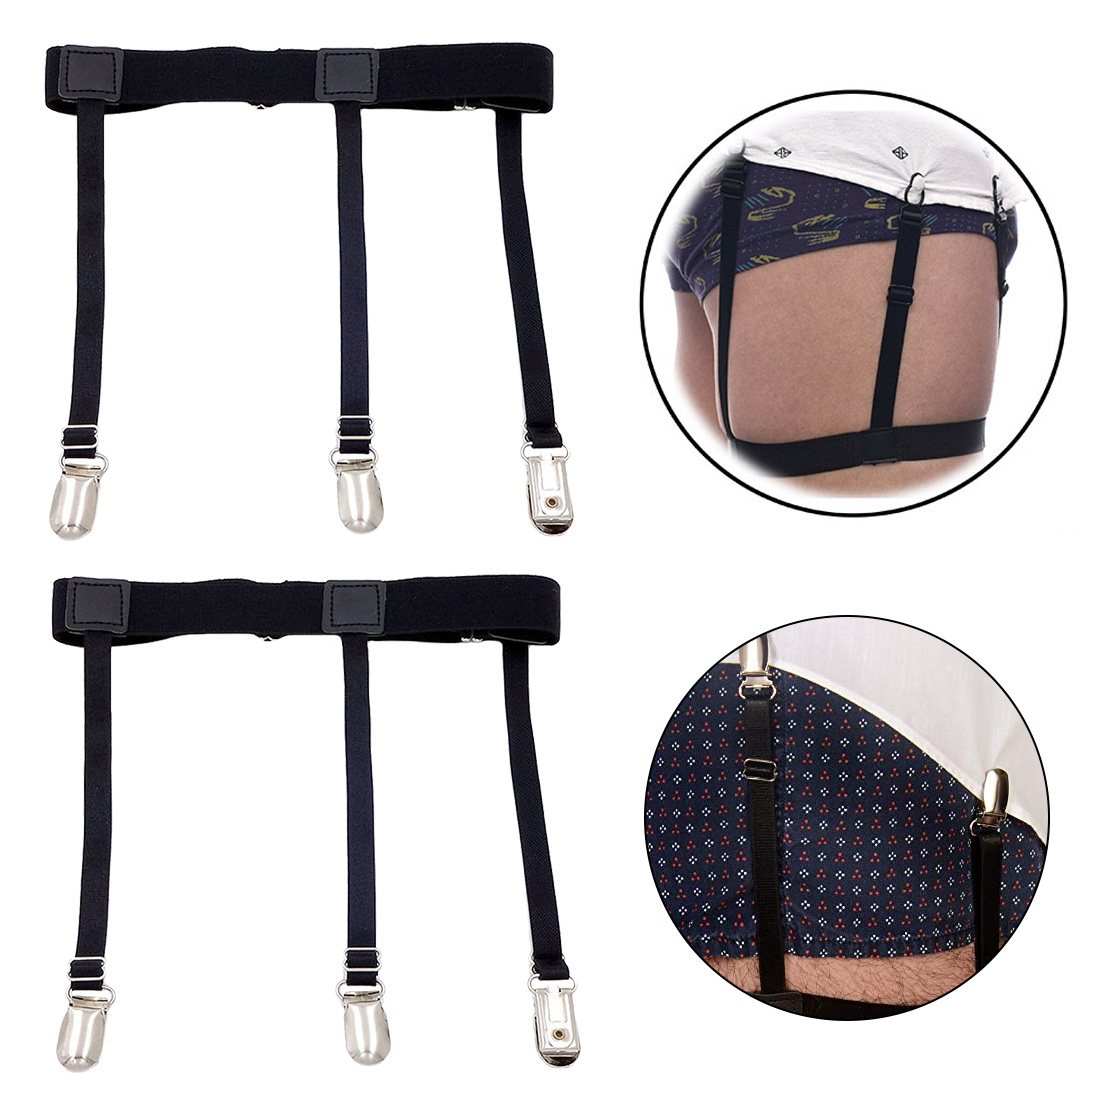 2 Pcs Men Shirt Stays Belt with Non slip Locking Clips Keep Shirt Tucked Leg Thigh Suspender Garters Strap in Men 39 s Belts from Apparel Accessories